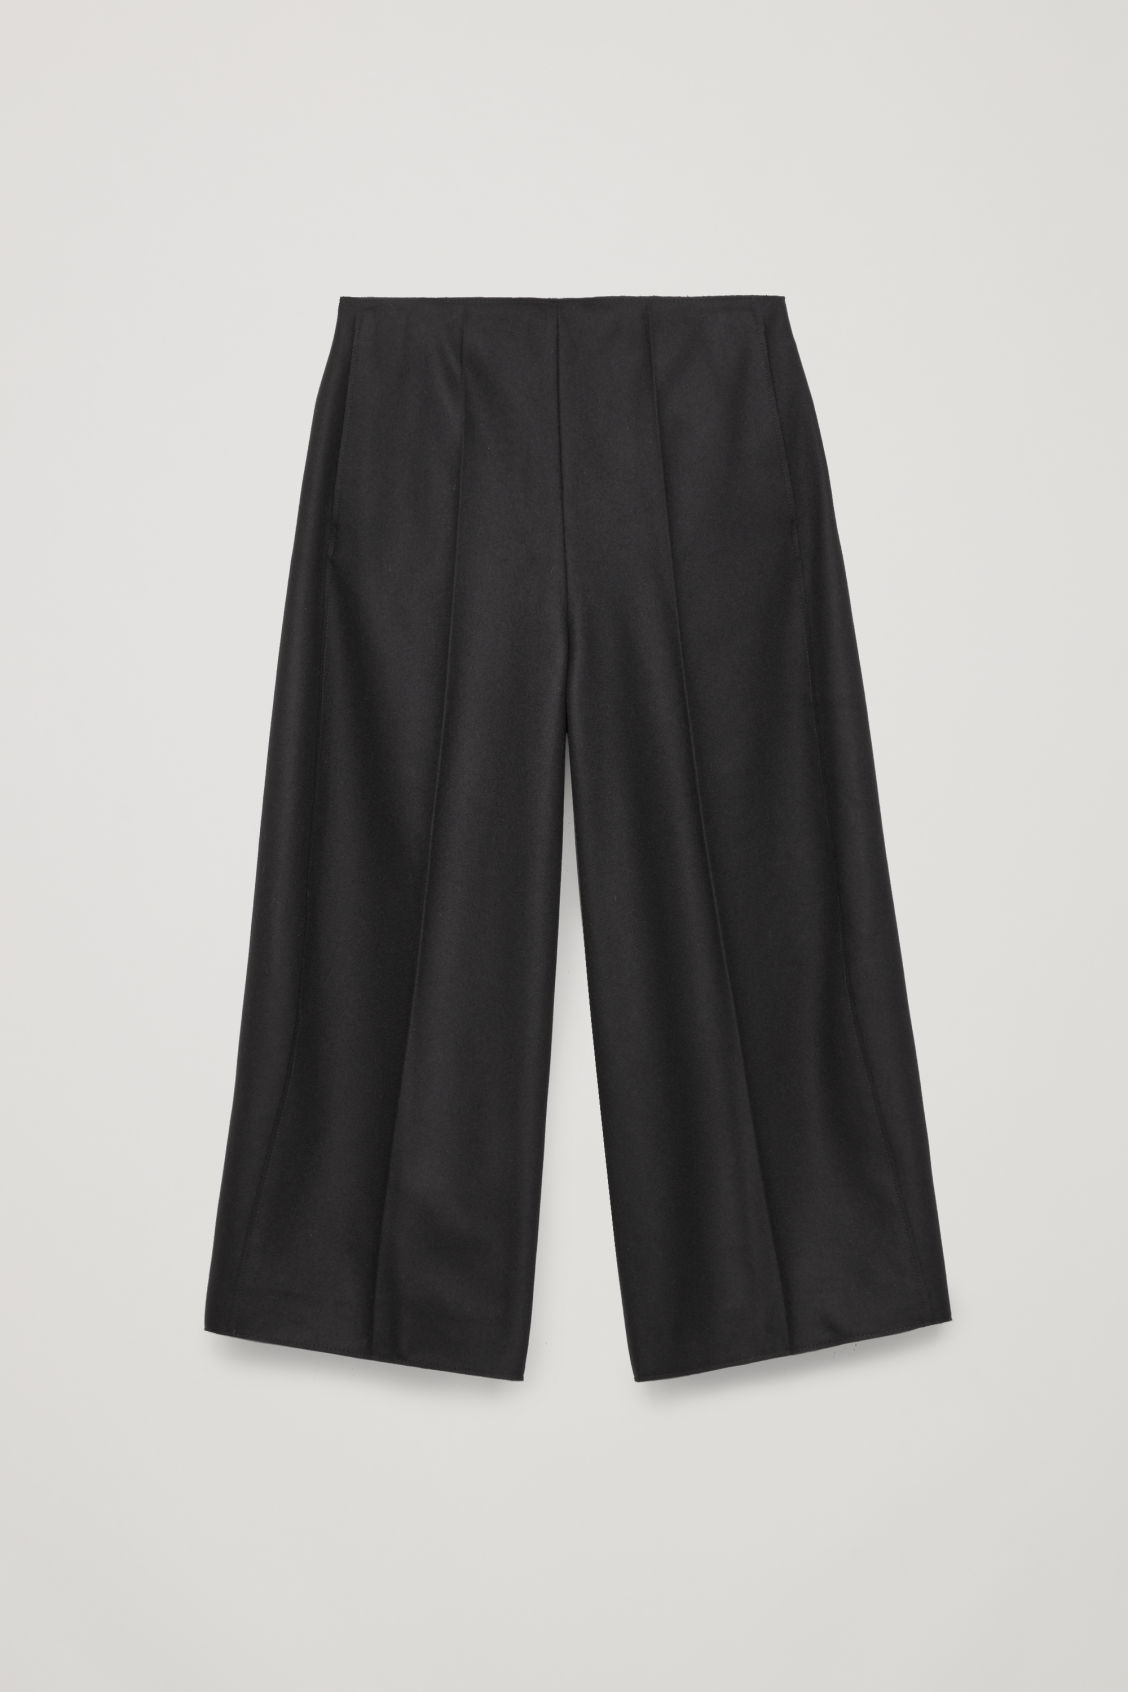 Raw-Cut Rounded Wool Culottes, Black from COS